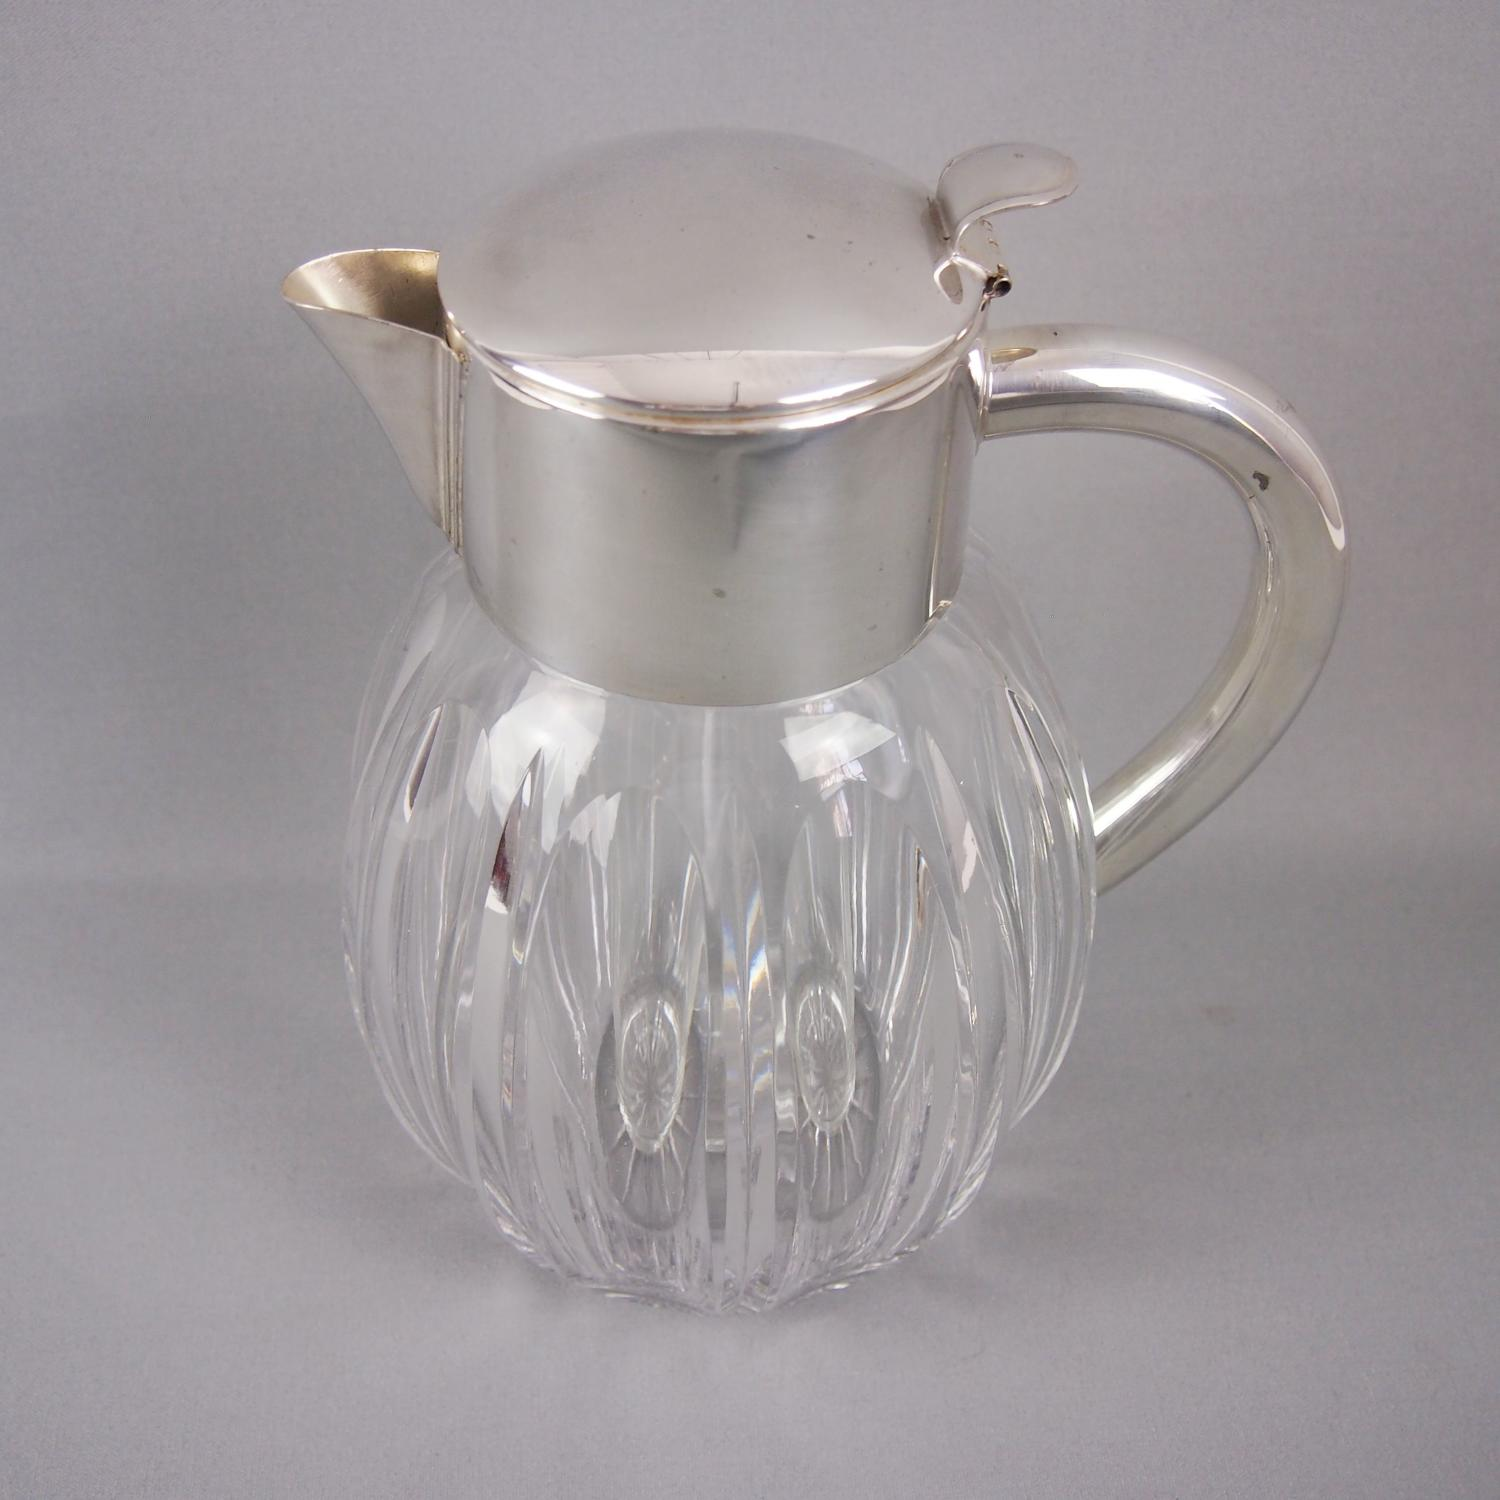 Lemonade Jug Silver Plated & Cut Glass C1940s